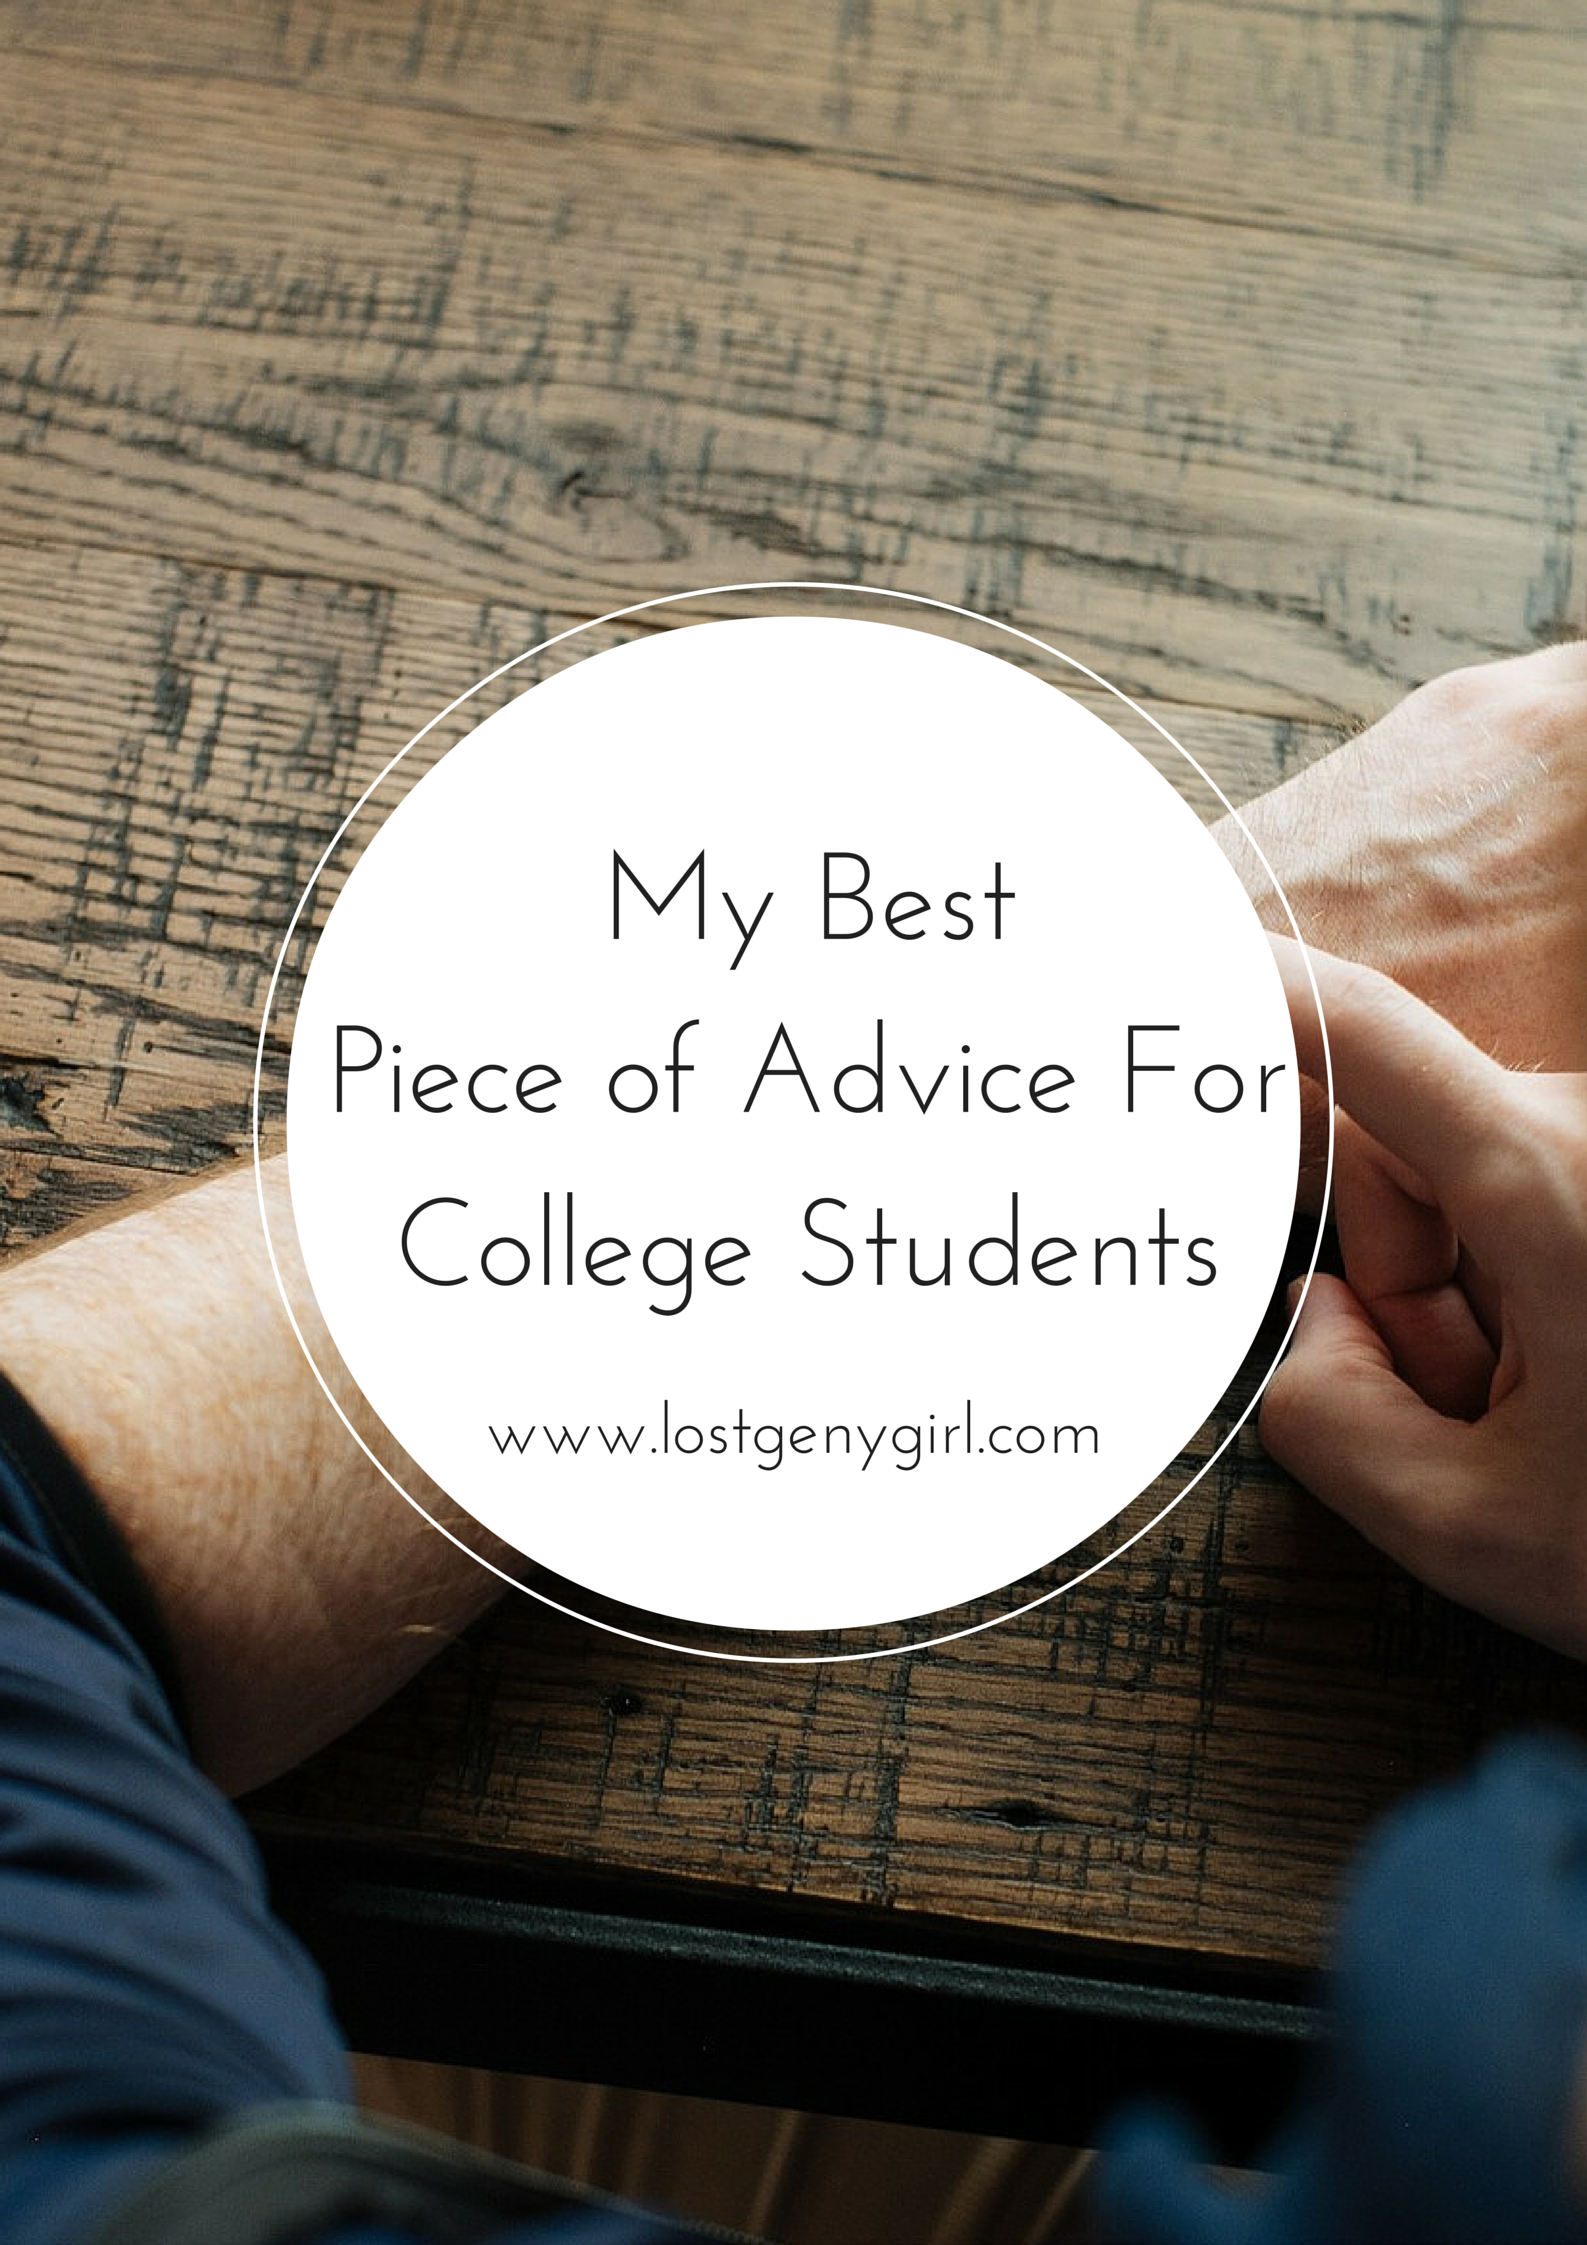 My Best Piece of Advice For College Students: Prepare For Career Success